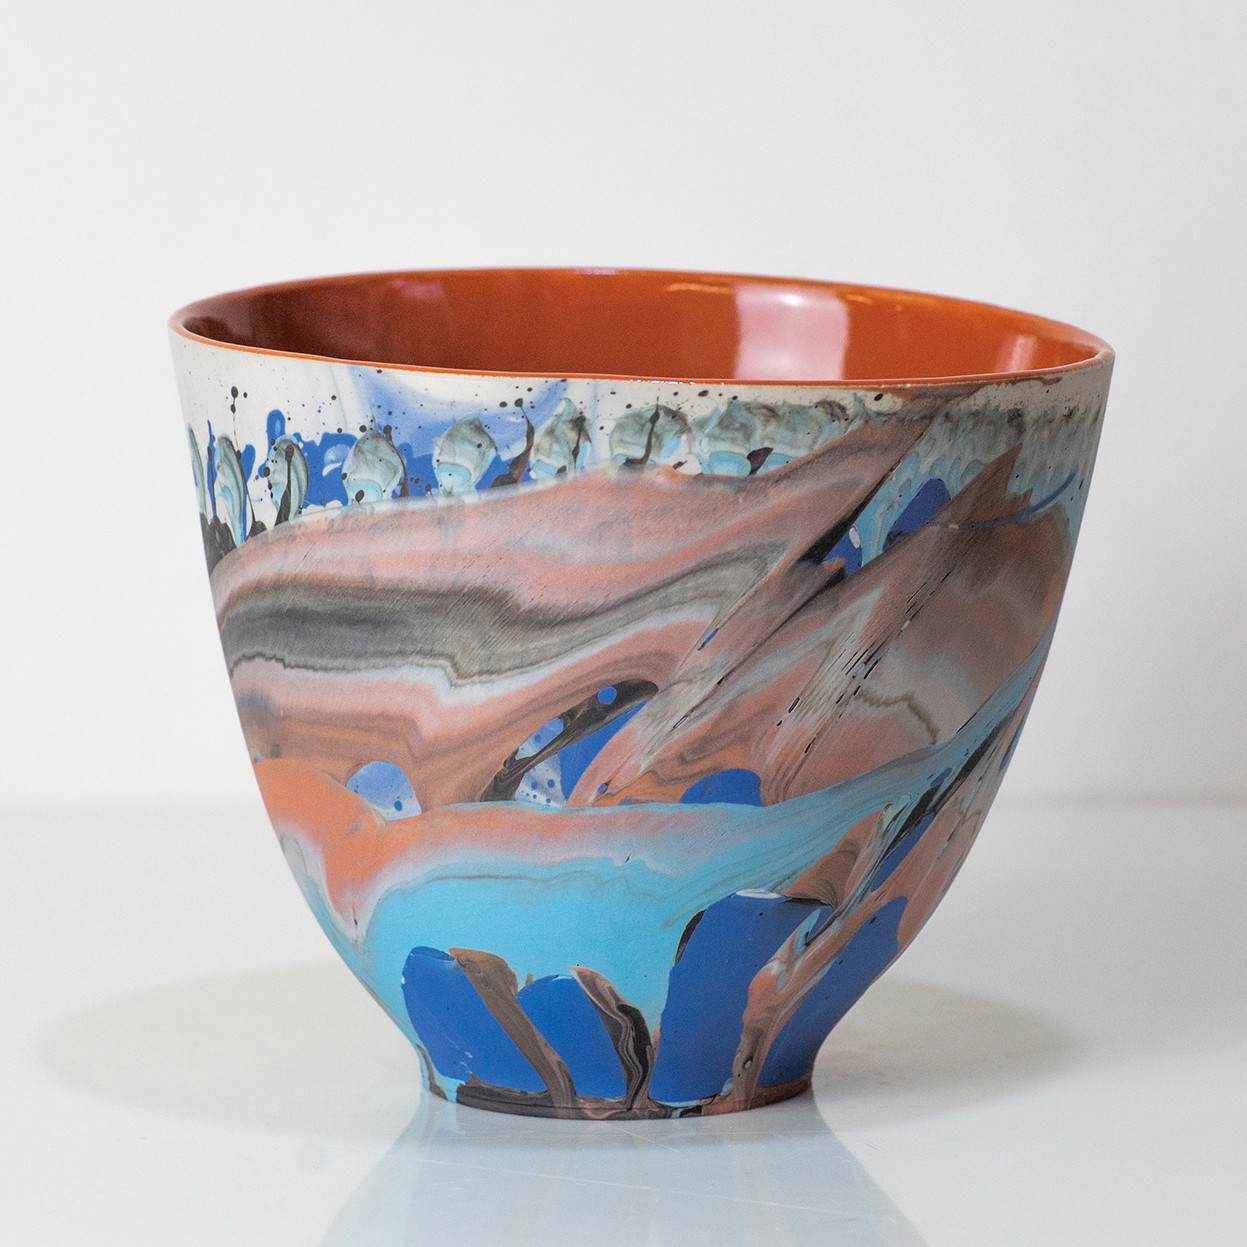 "<span class=""link fancybox-details-link""><a href=""/artists/219-james-pegg/works/6074-james-pegg-bowl-2019/"">View Detail Page</a></span><div class=""artist""><strong>James Pegg</strong></div> <div class=""title""><em>Bowl</em>, 2019</div> <div class=""medium"">action-cast stained porcelain with glazed interior</div> <div class=""dimensions"">h 13 cm<br /> 5 1/4 in</div><div class=""price"">£145.00</div><div class=""copyright_line"">OwnArt: £ 14.50 x 10 Months, 0% APR </div>"